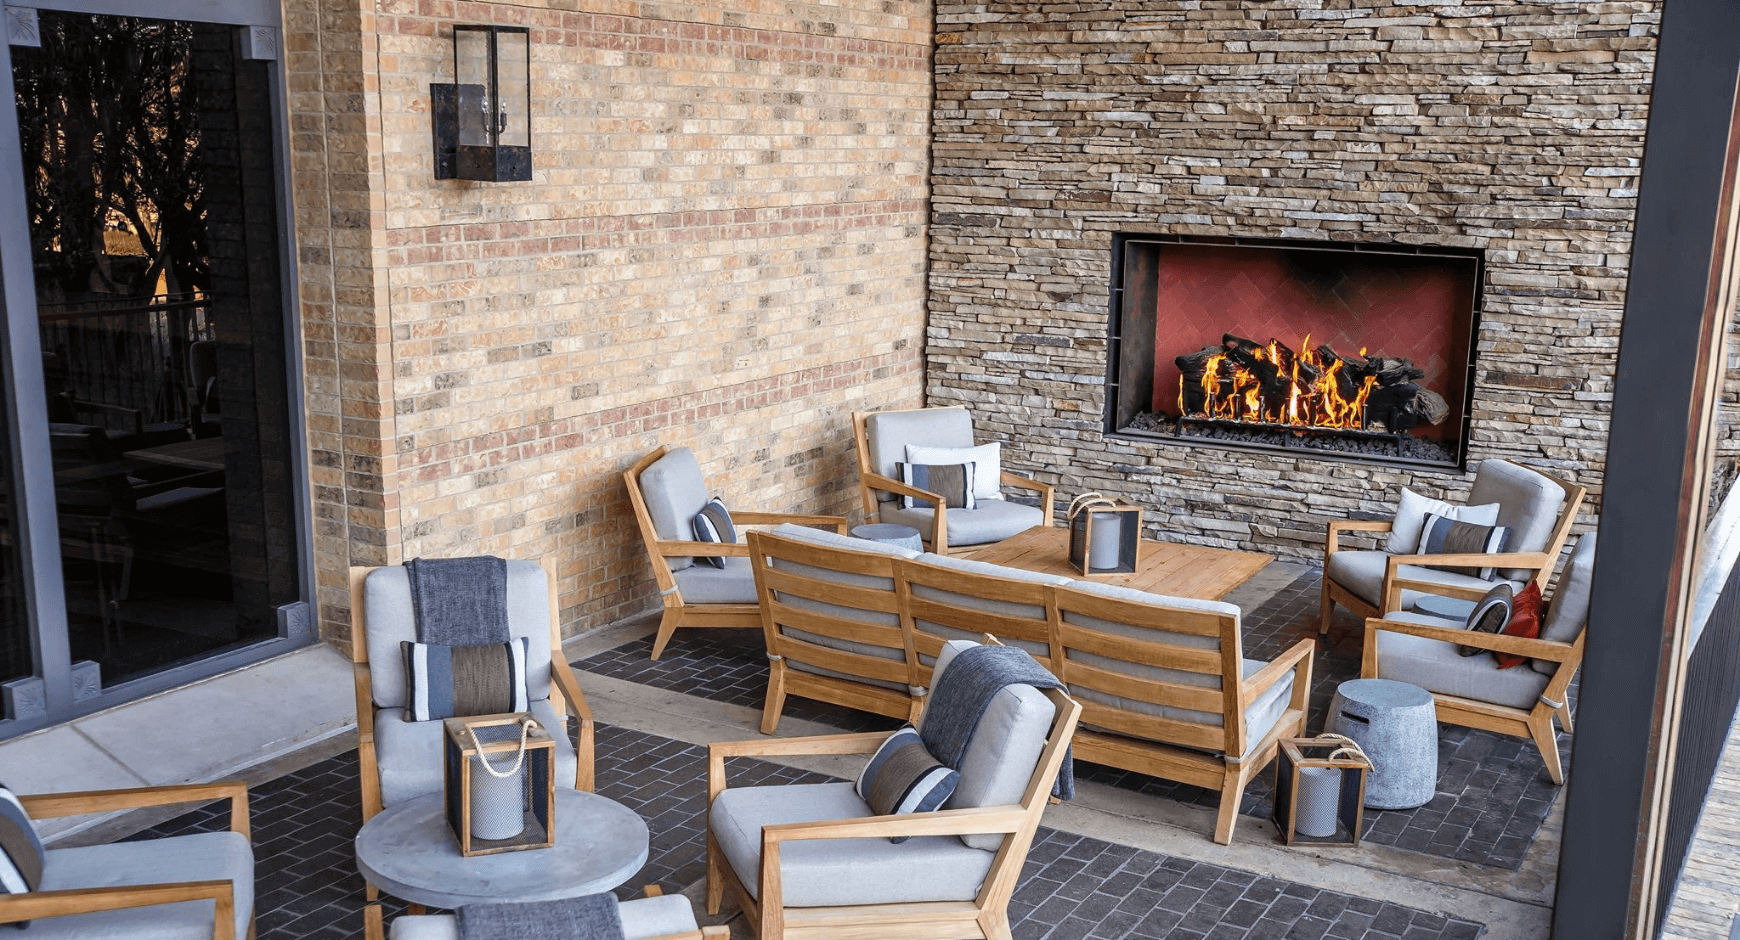 Covered Patio with a Fireplace That Creates a Cozy Gathering Space